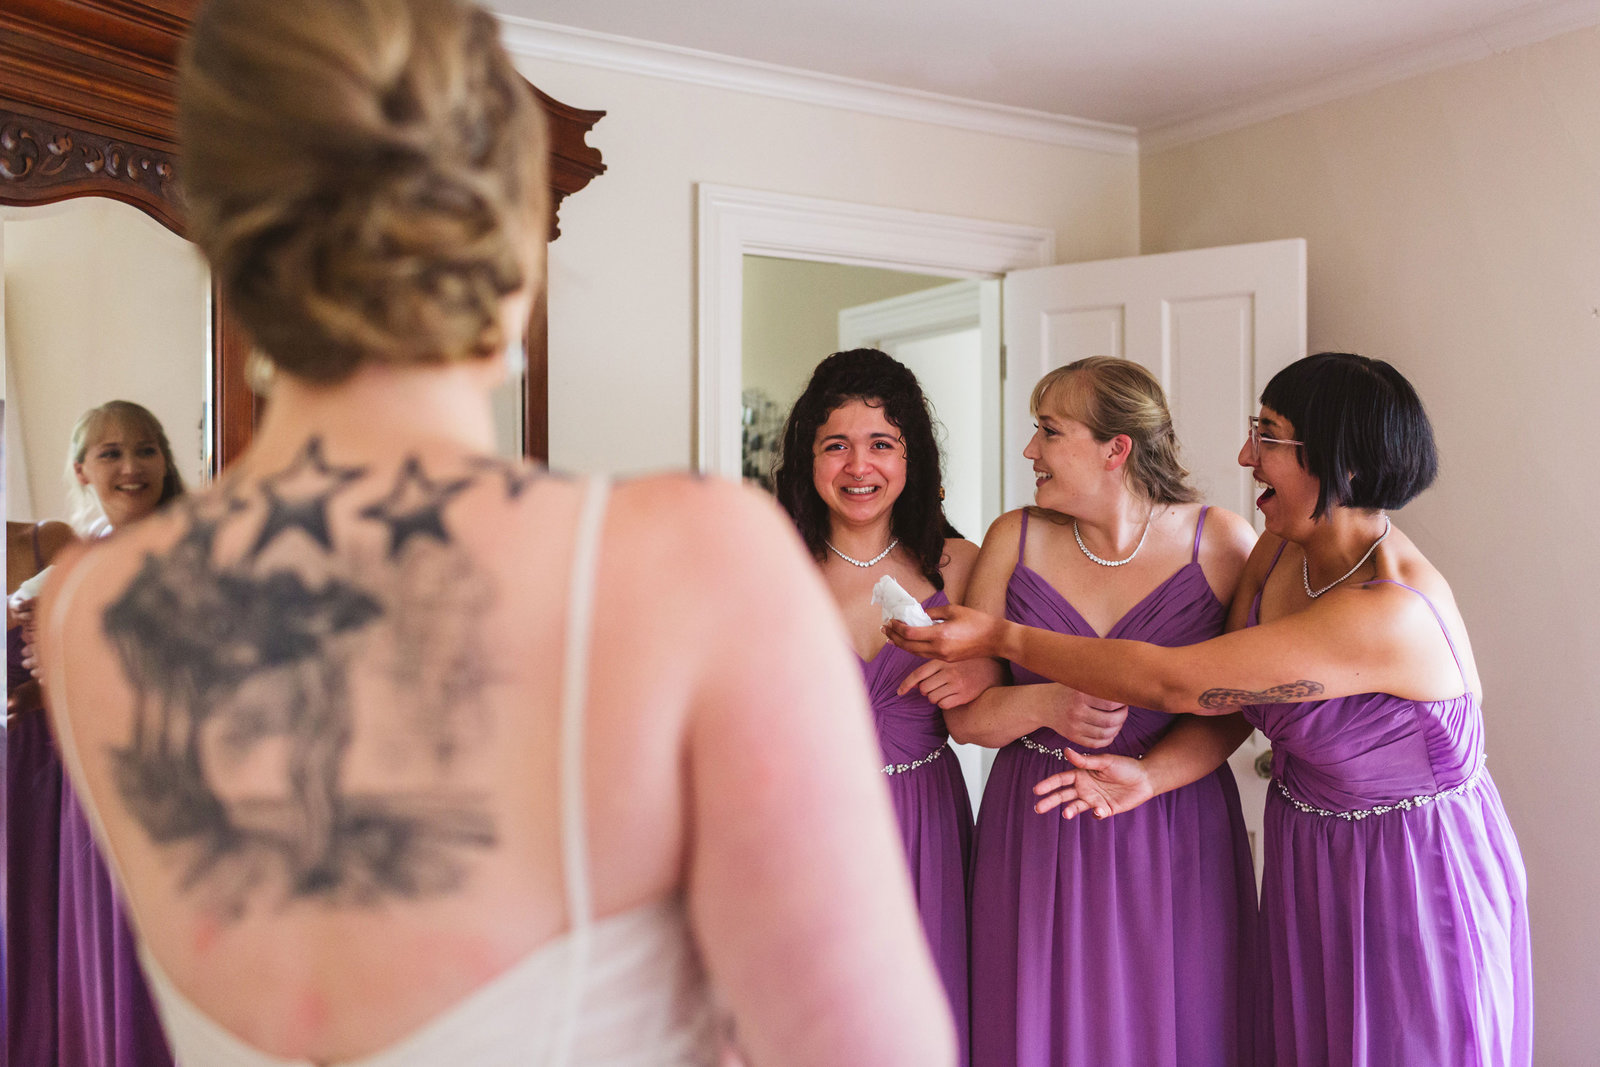 monte verde in emotional wedding moment as one bridesmaid hands another bridesmaid a tissue